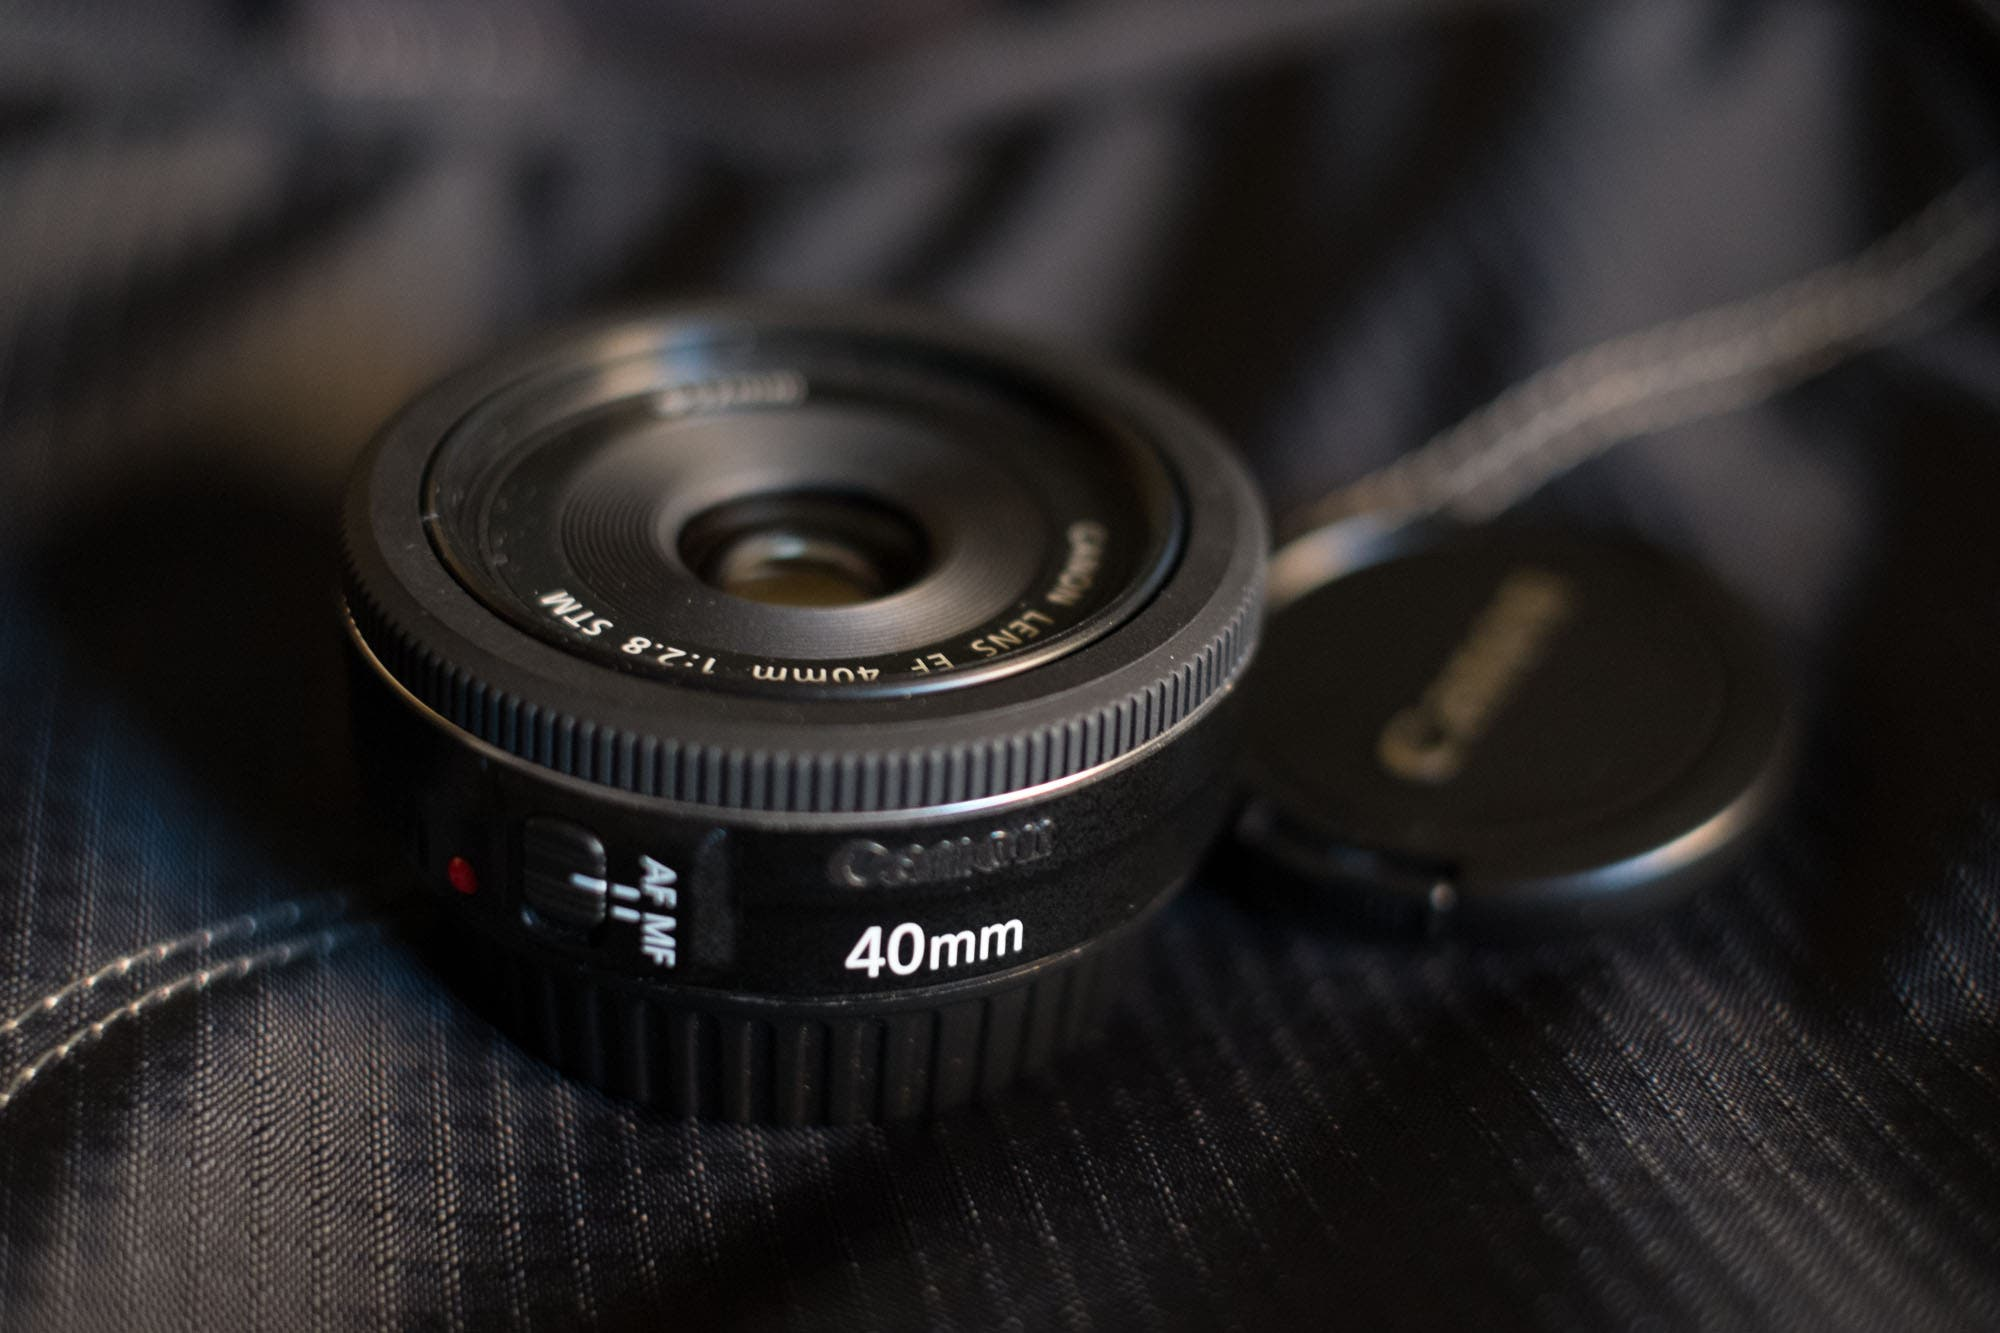 Four Budget Lenses for Canon Cameras That Dispel Expensive Glass Myths